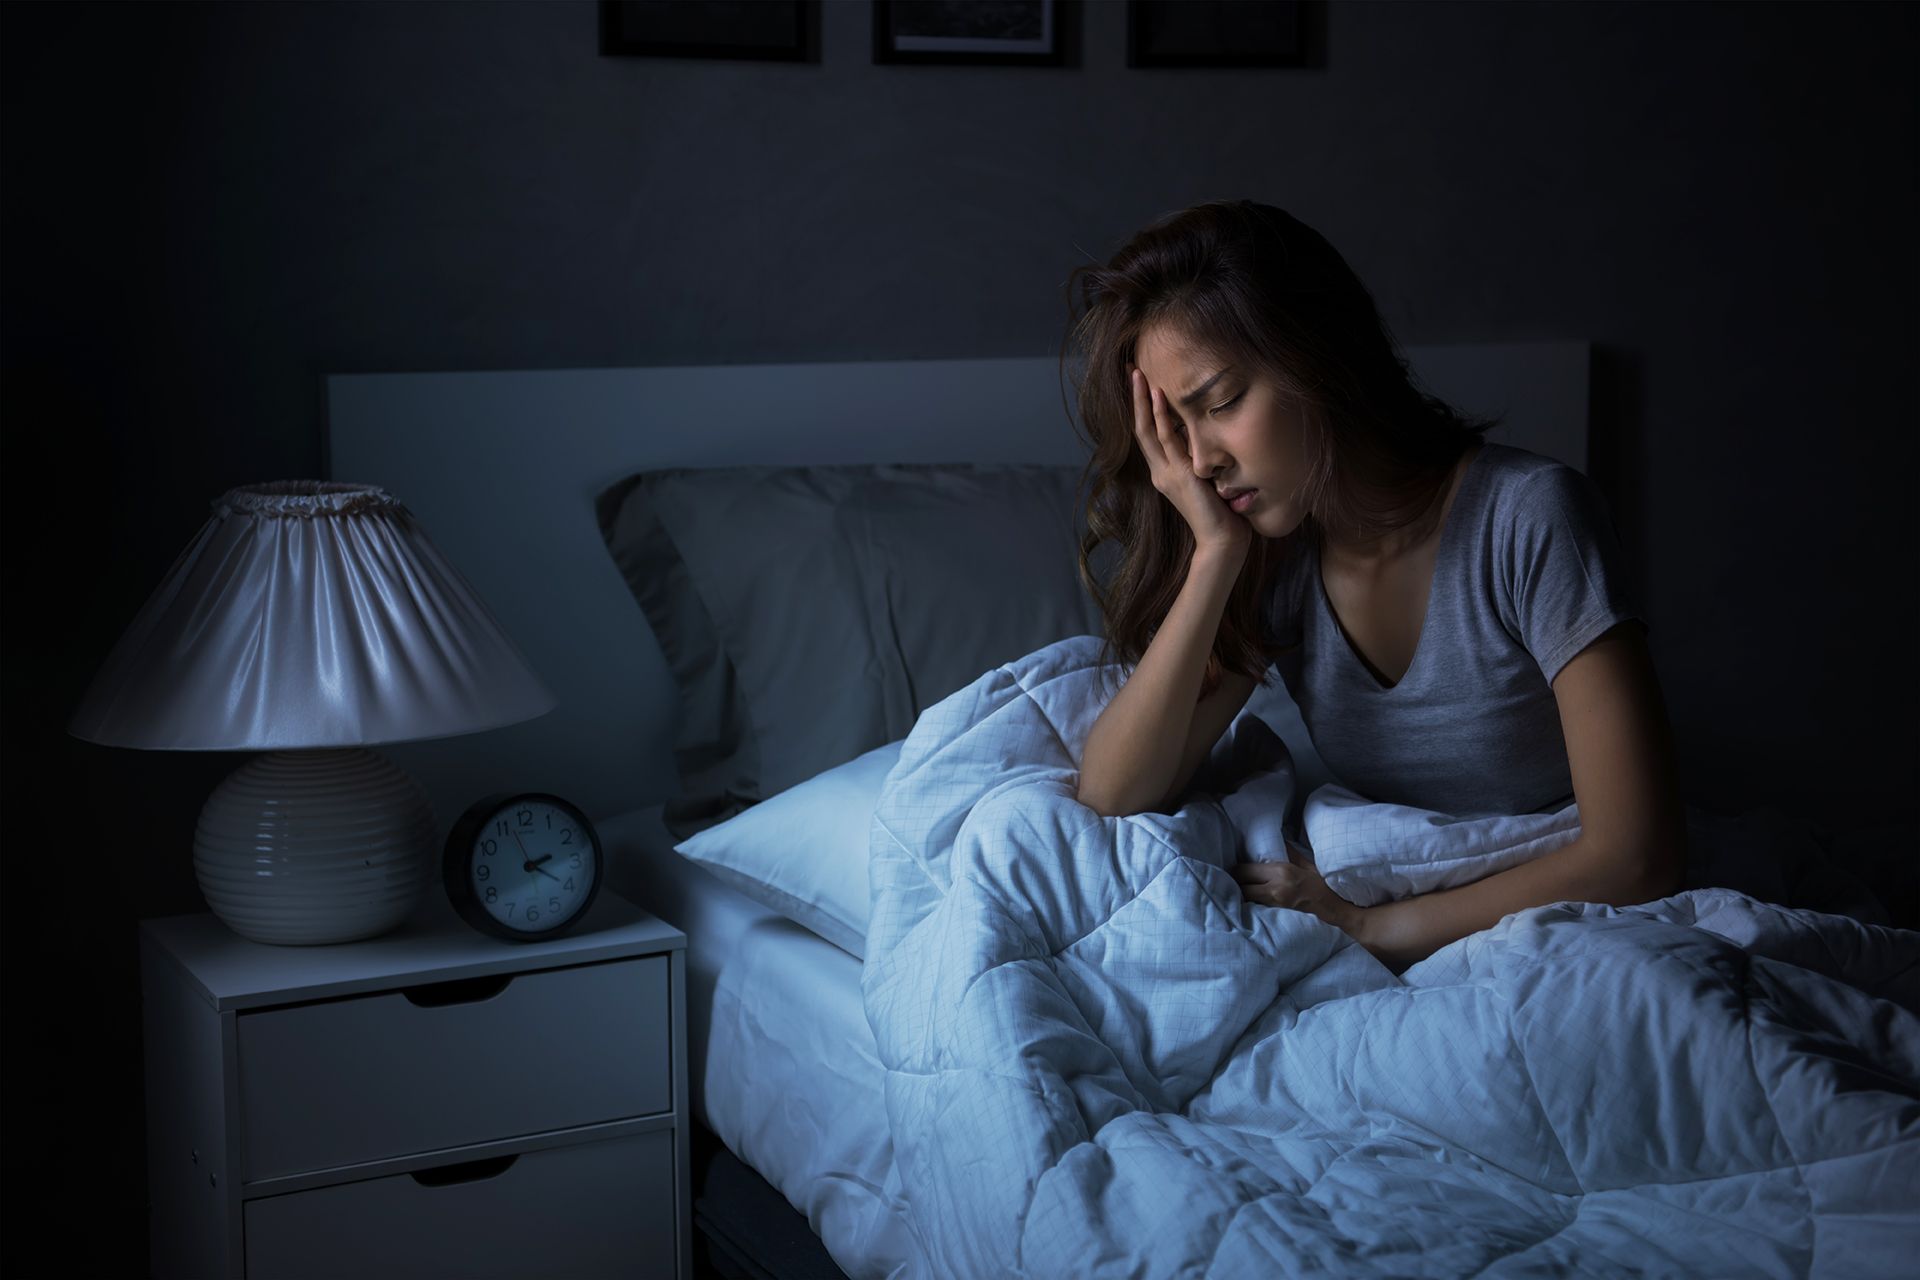 Depressed young Asian woman sitting in bed cannot sleep from insomnia - CBN  Asia Family of Ministries